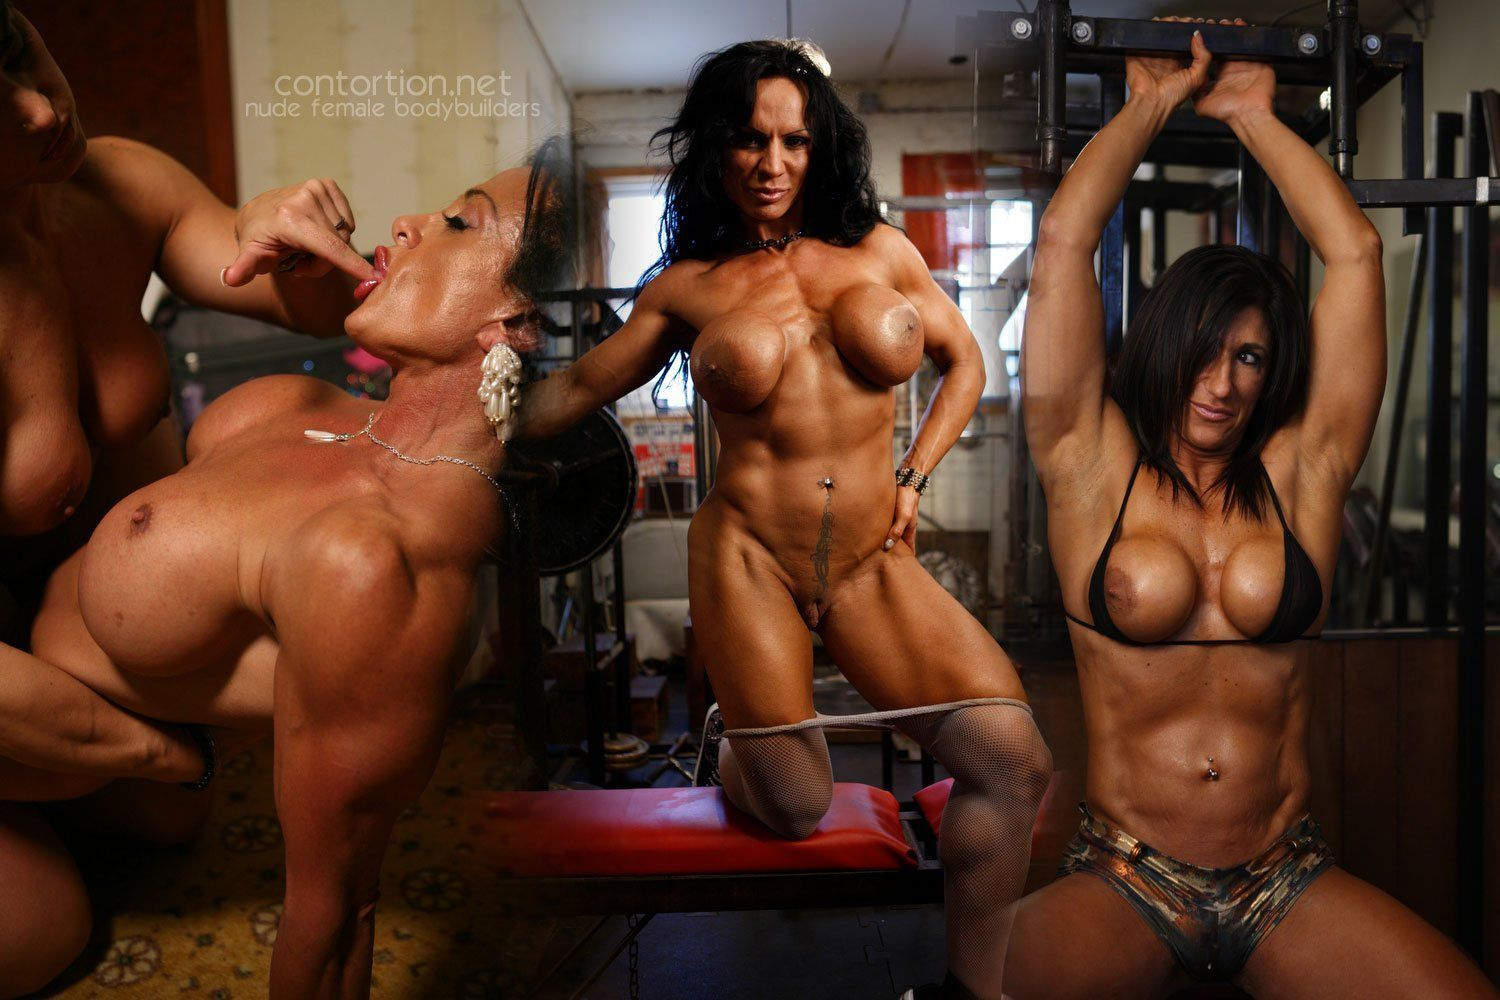 Body Builders Nude Photos body builder female hot naked - top porn photos. comments: 3